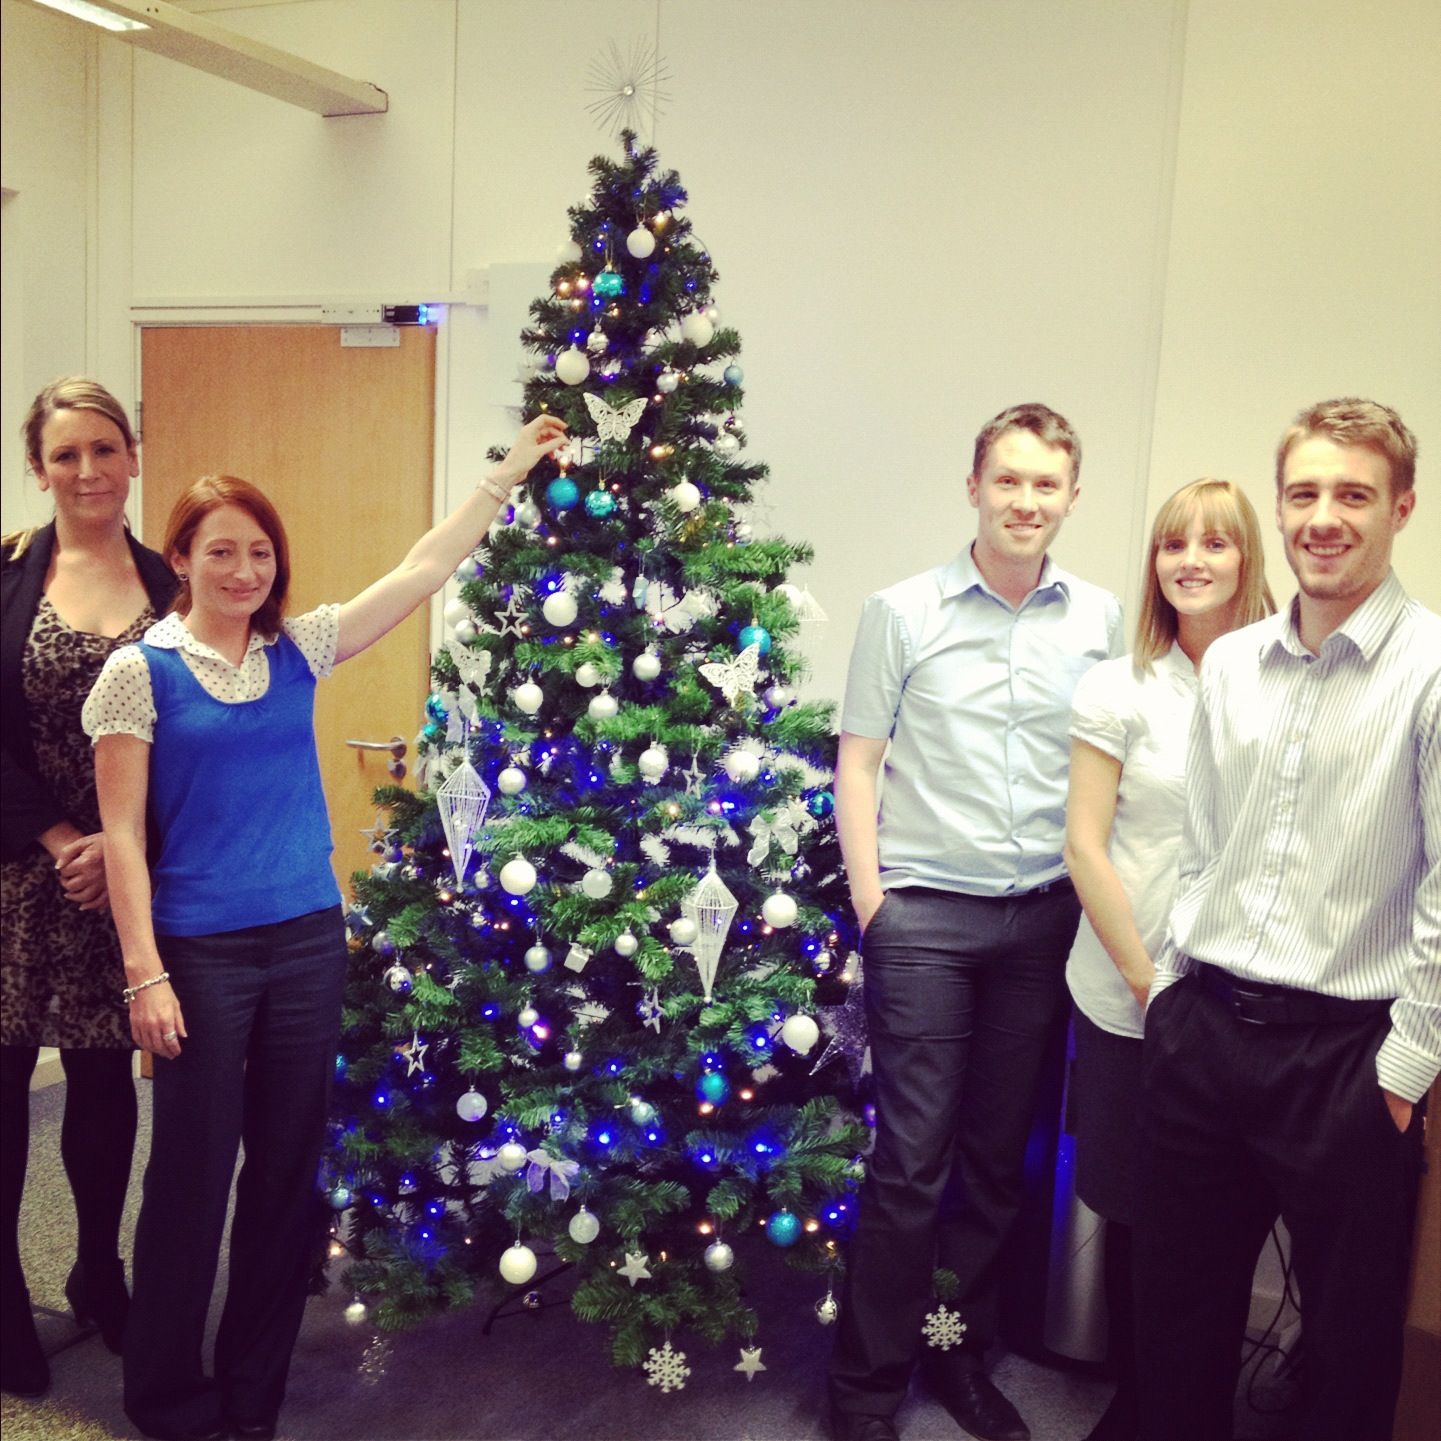 We now have the Communicator Corp #Christmas tree up and we're feeling festive! #Merrychristmas